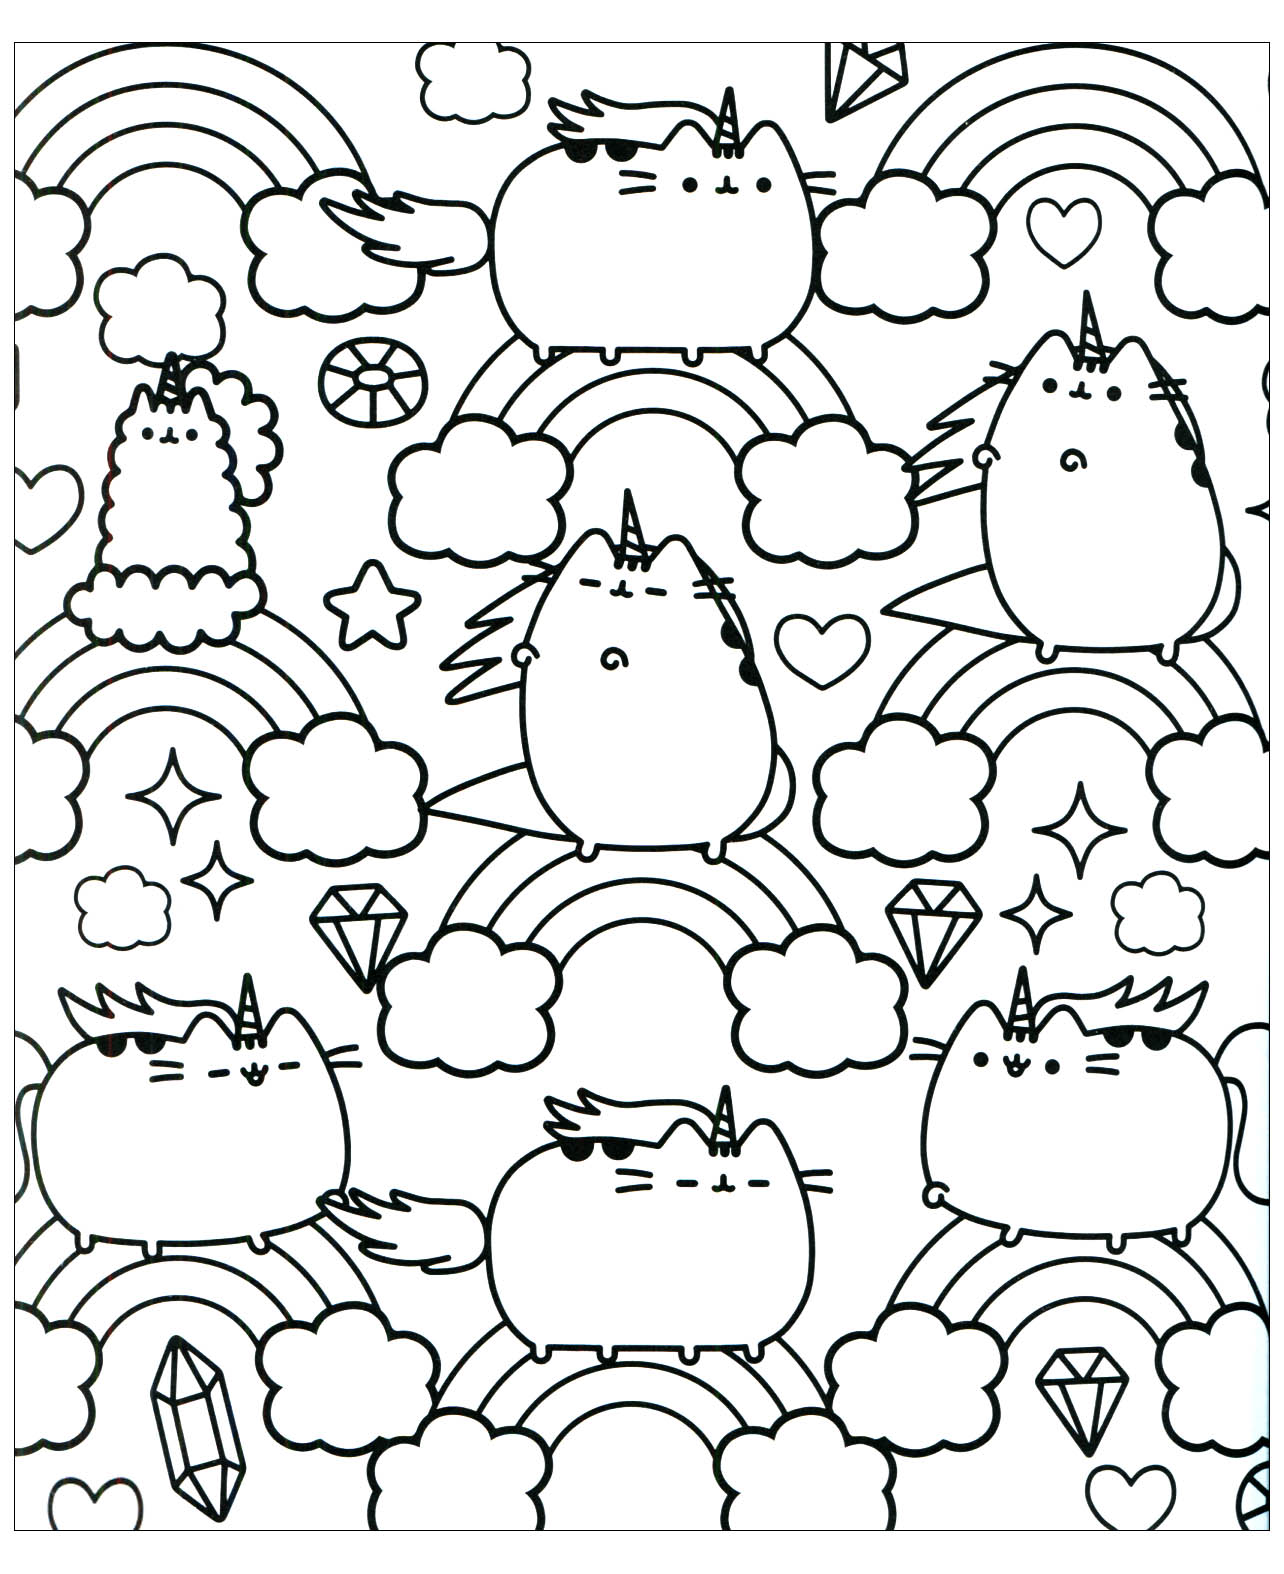 Pusheen Coloring Pages For Adults